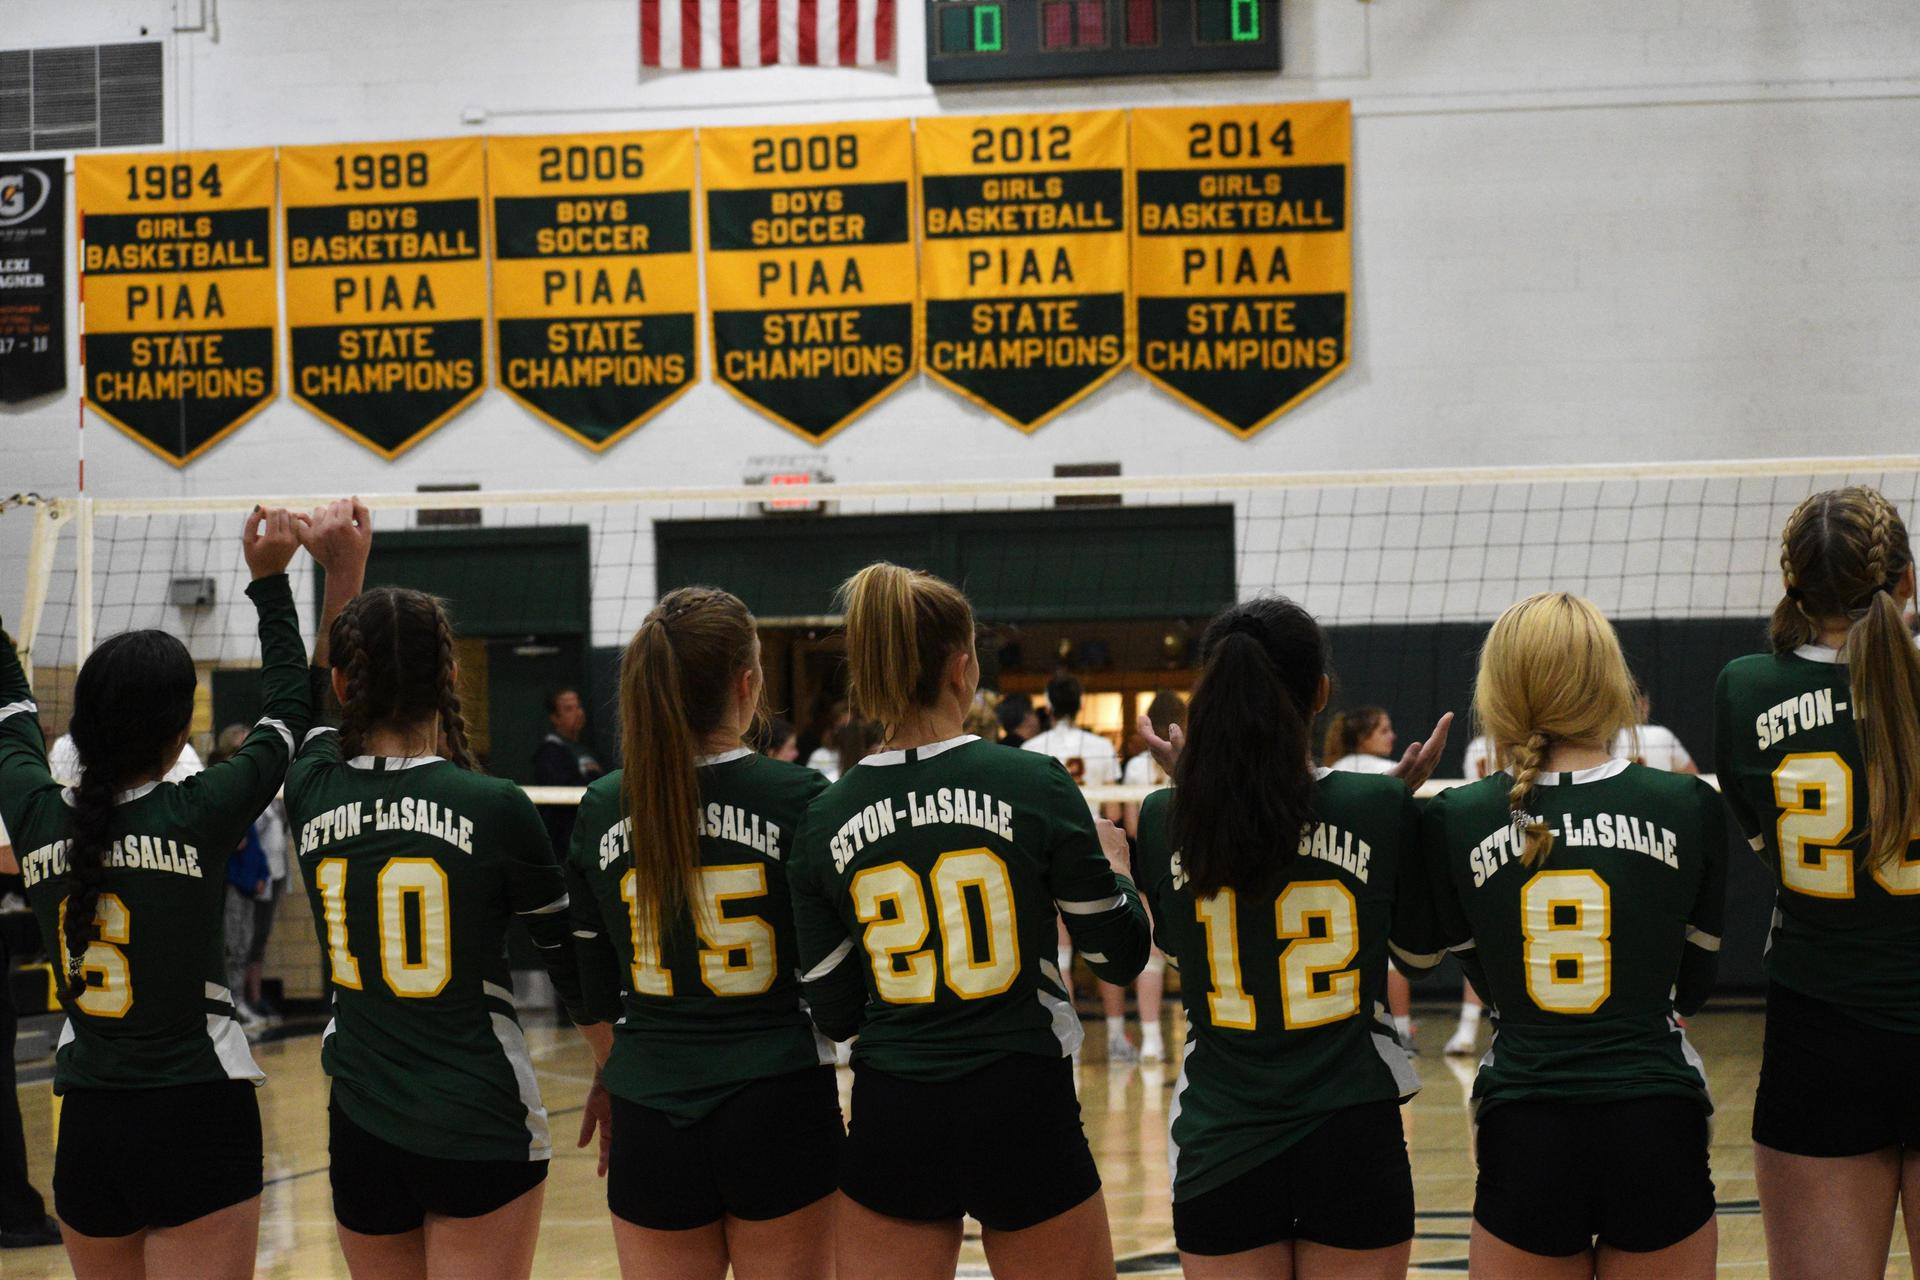 Girls Volleyball players lined up before the game